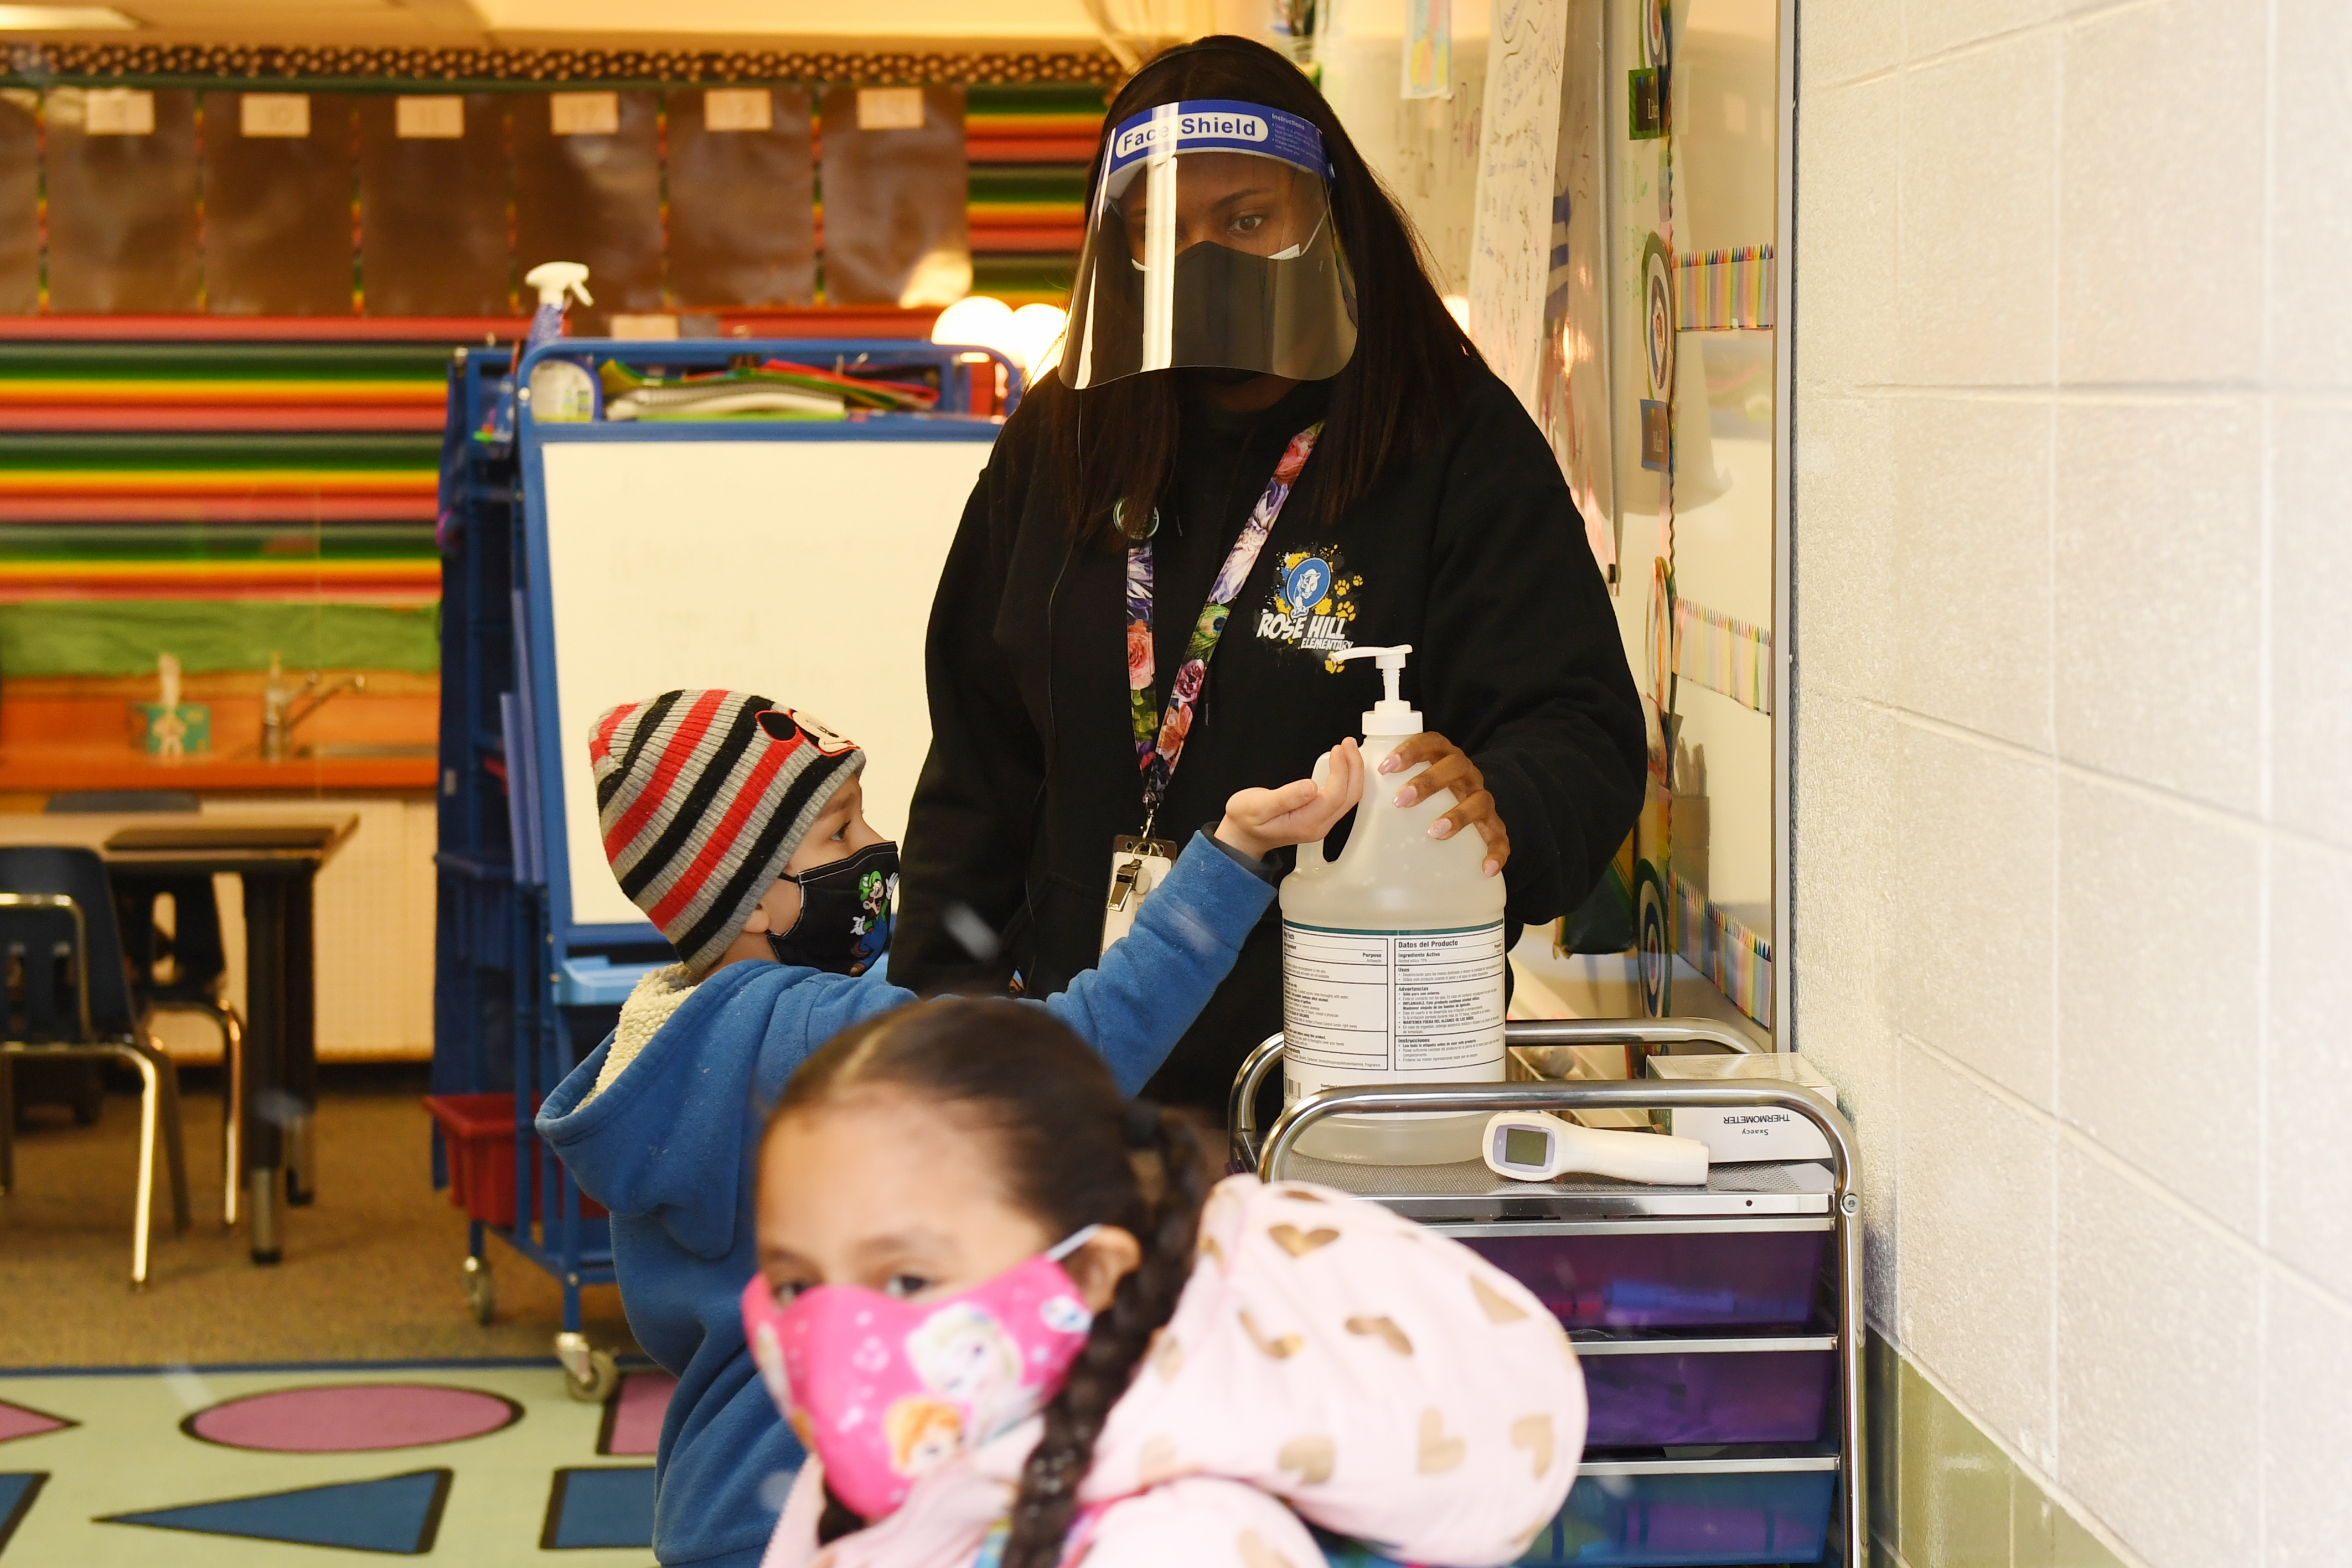 A teacher wearing a mask and face shield helps masked students use hand sanitizer before starting class in an elementary classroom.